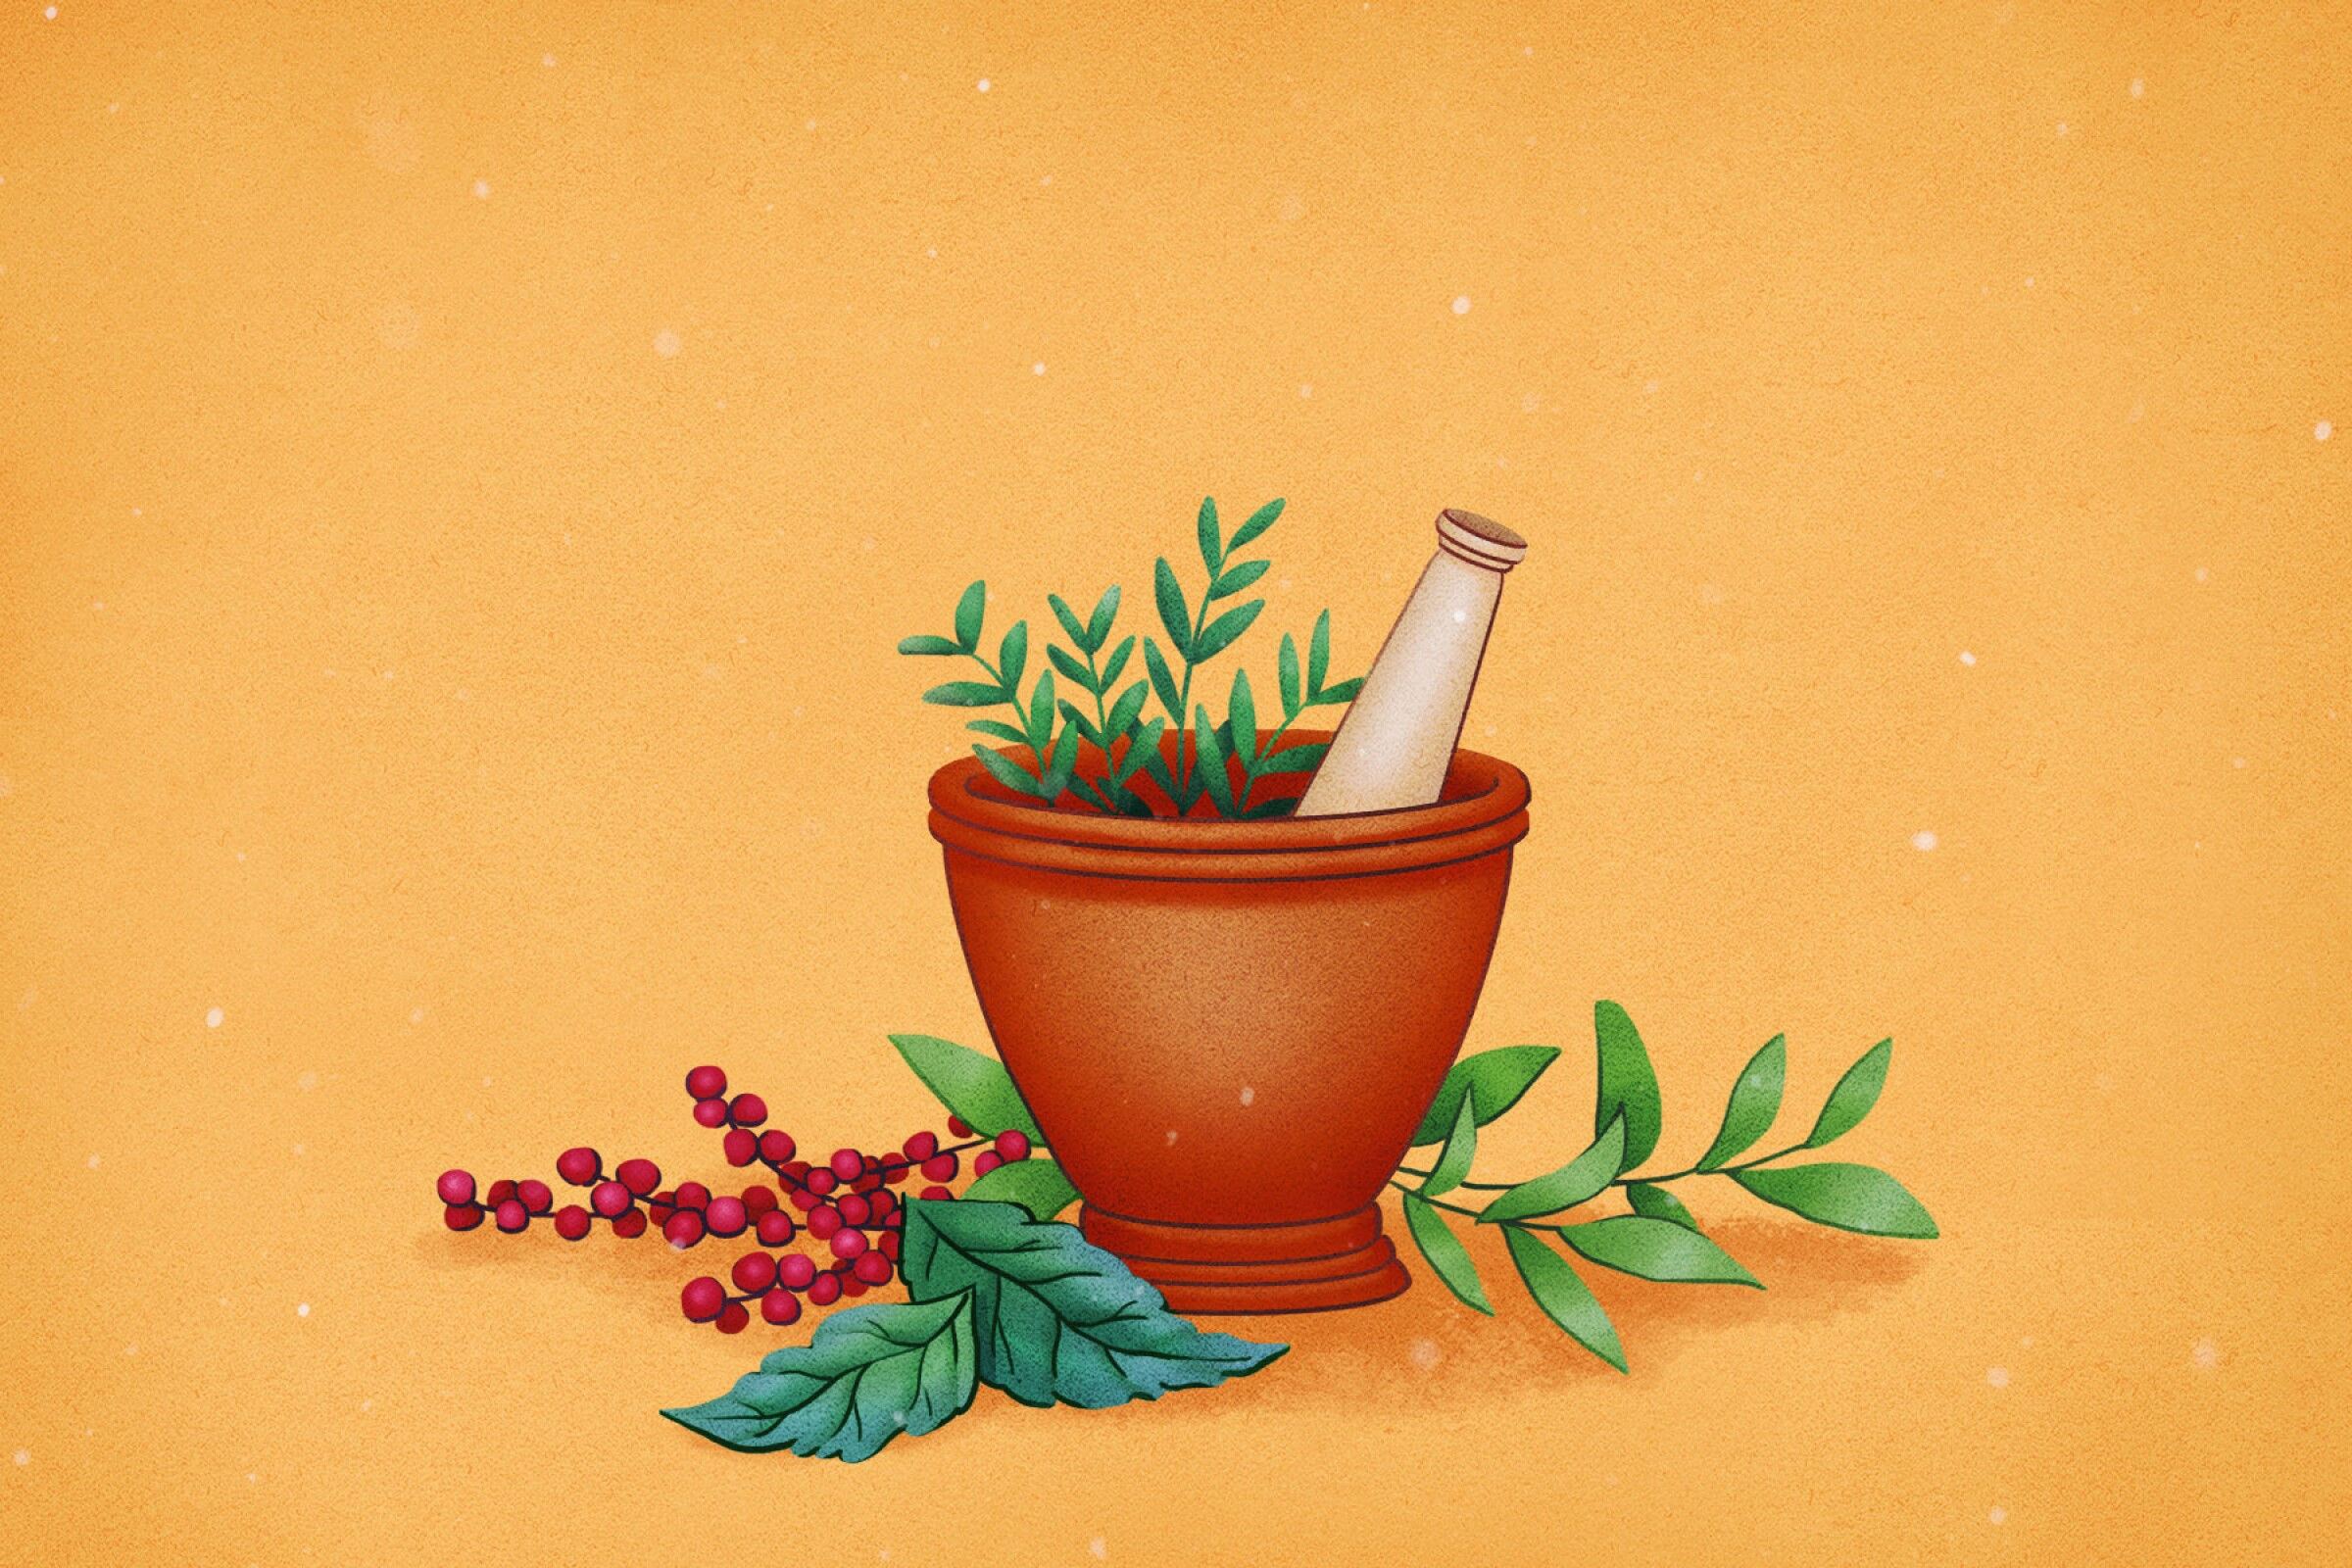 Herbs illustration